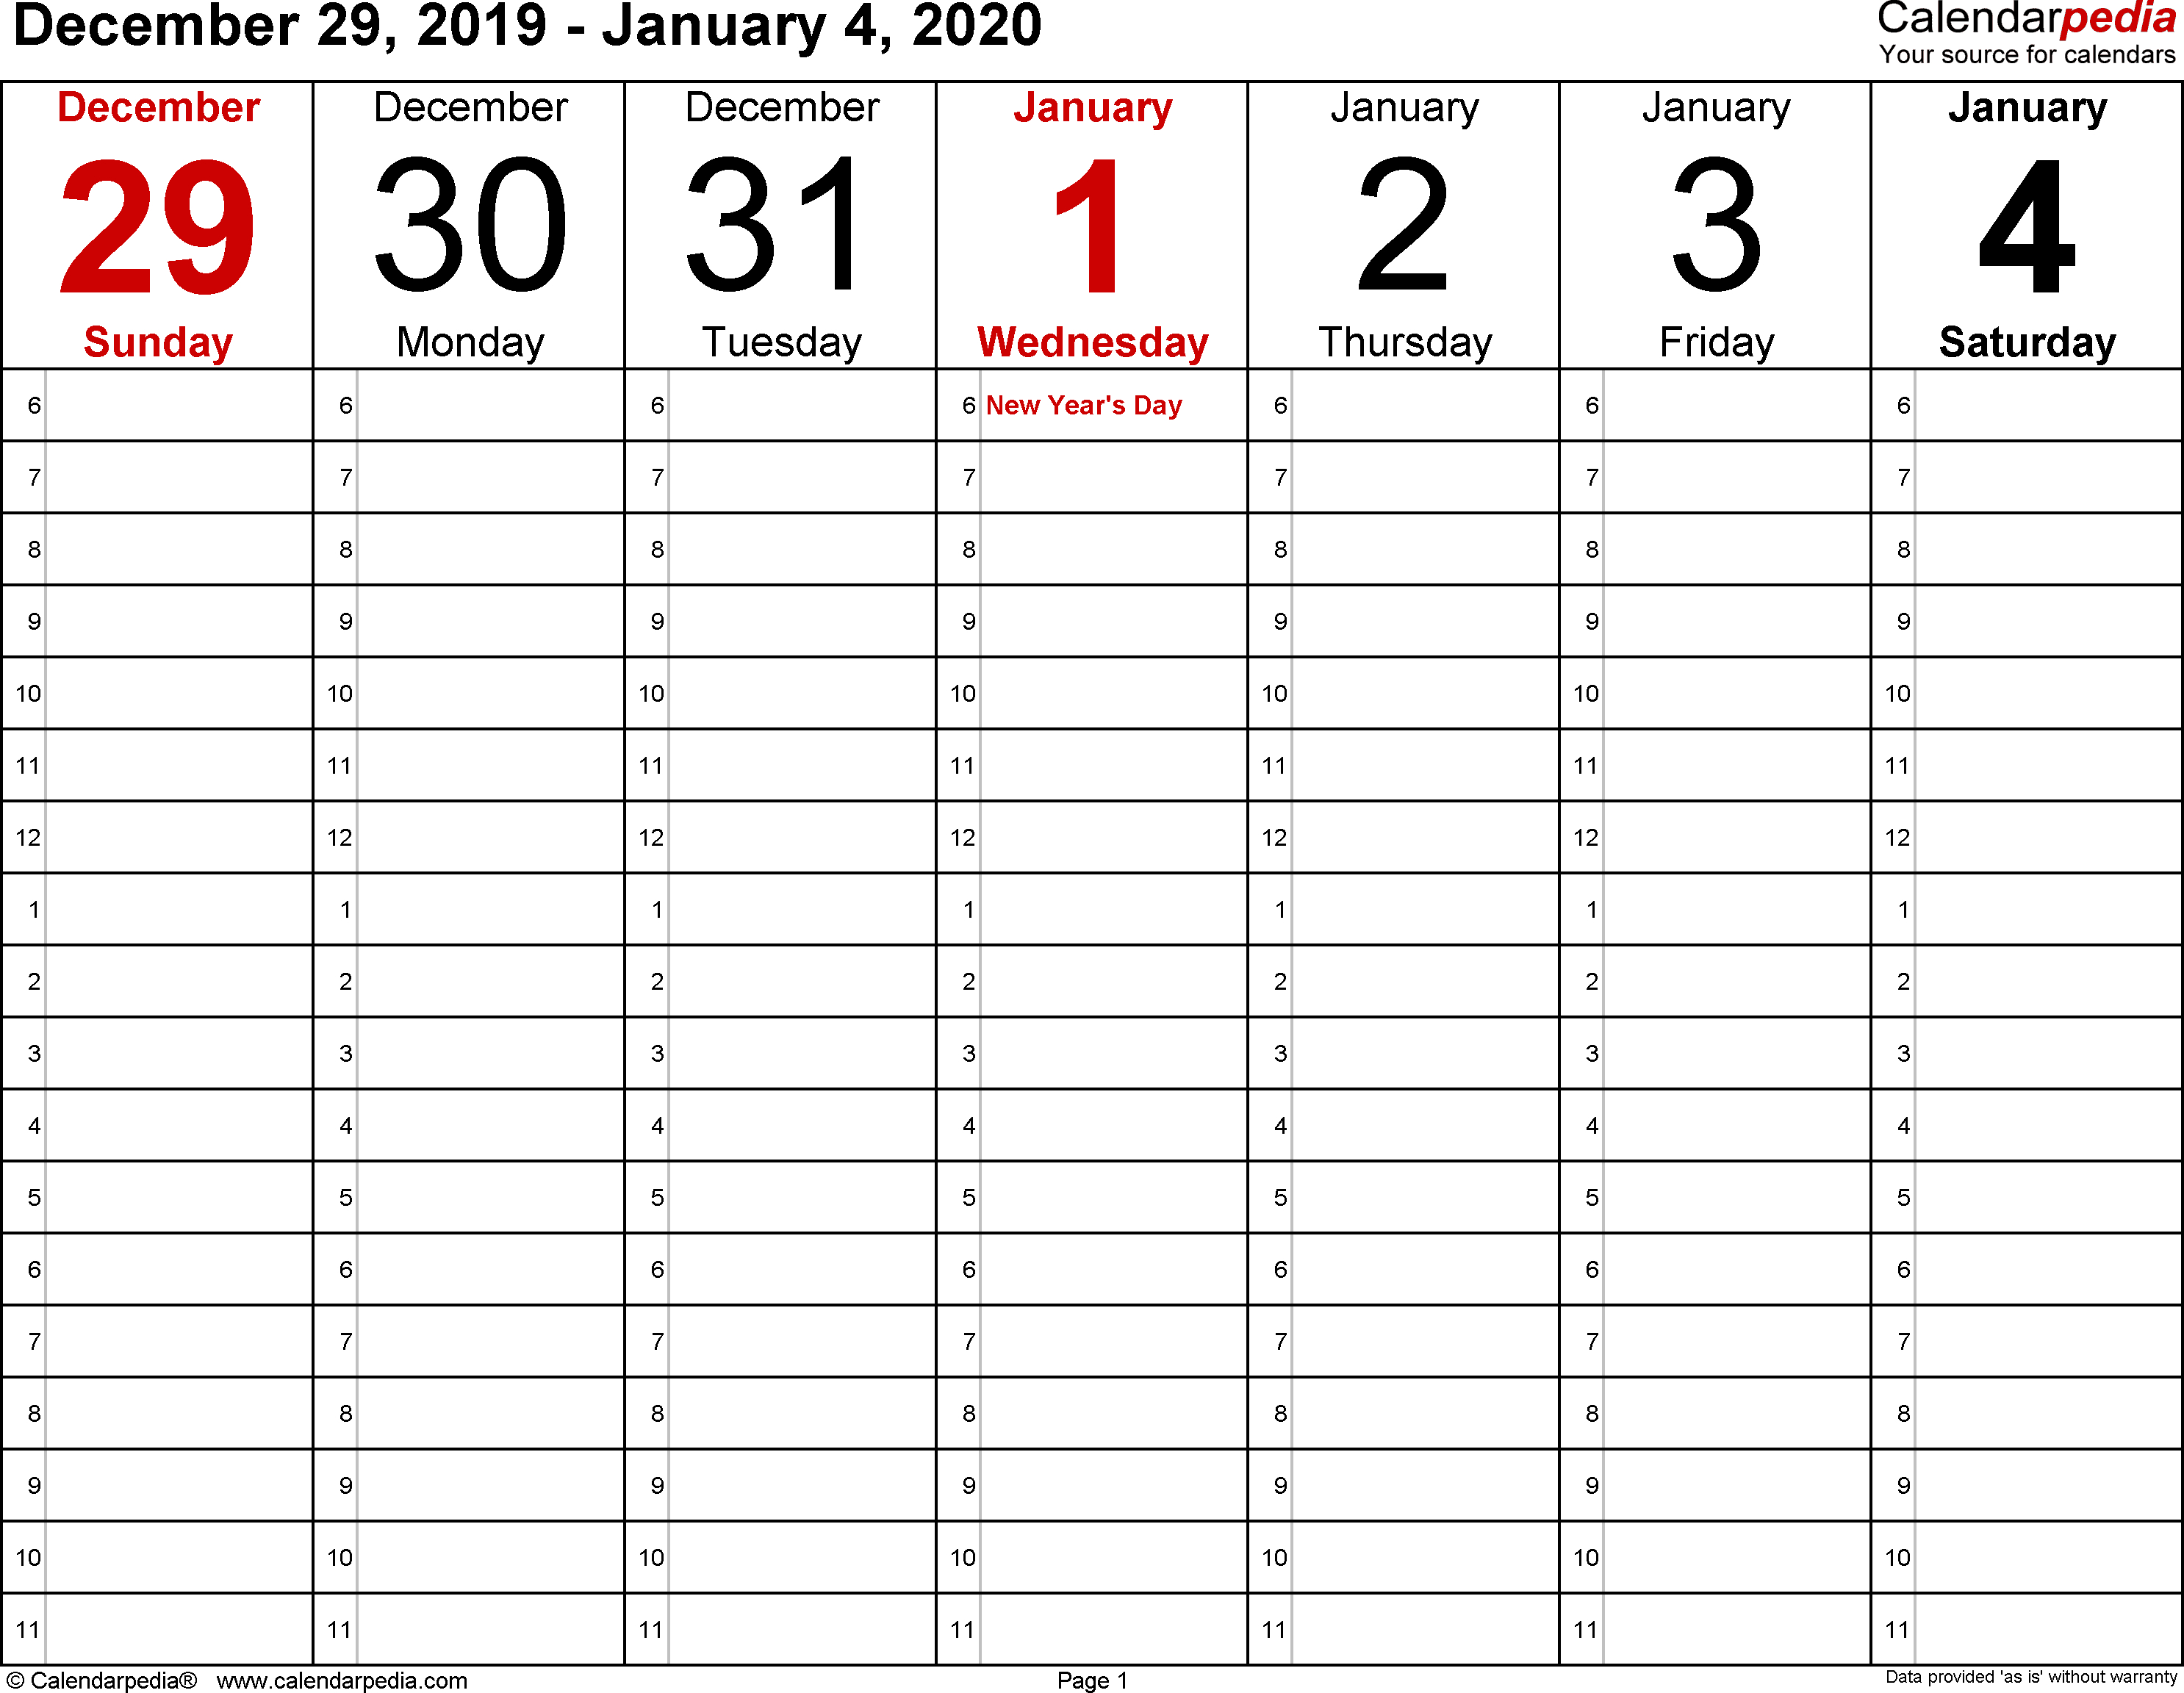 Weekly Calendar 2020 For Word - 12 Free Printable Templates pertaining to Year Calendar 2020 With Space To Write